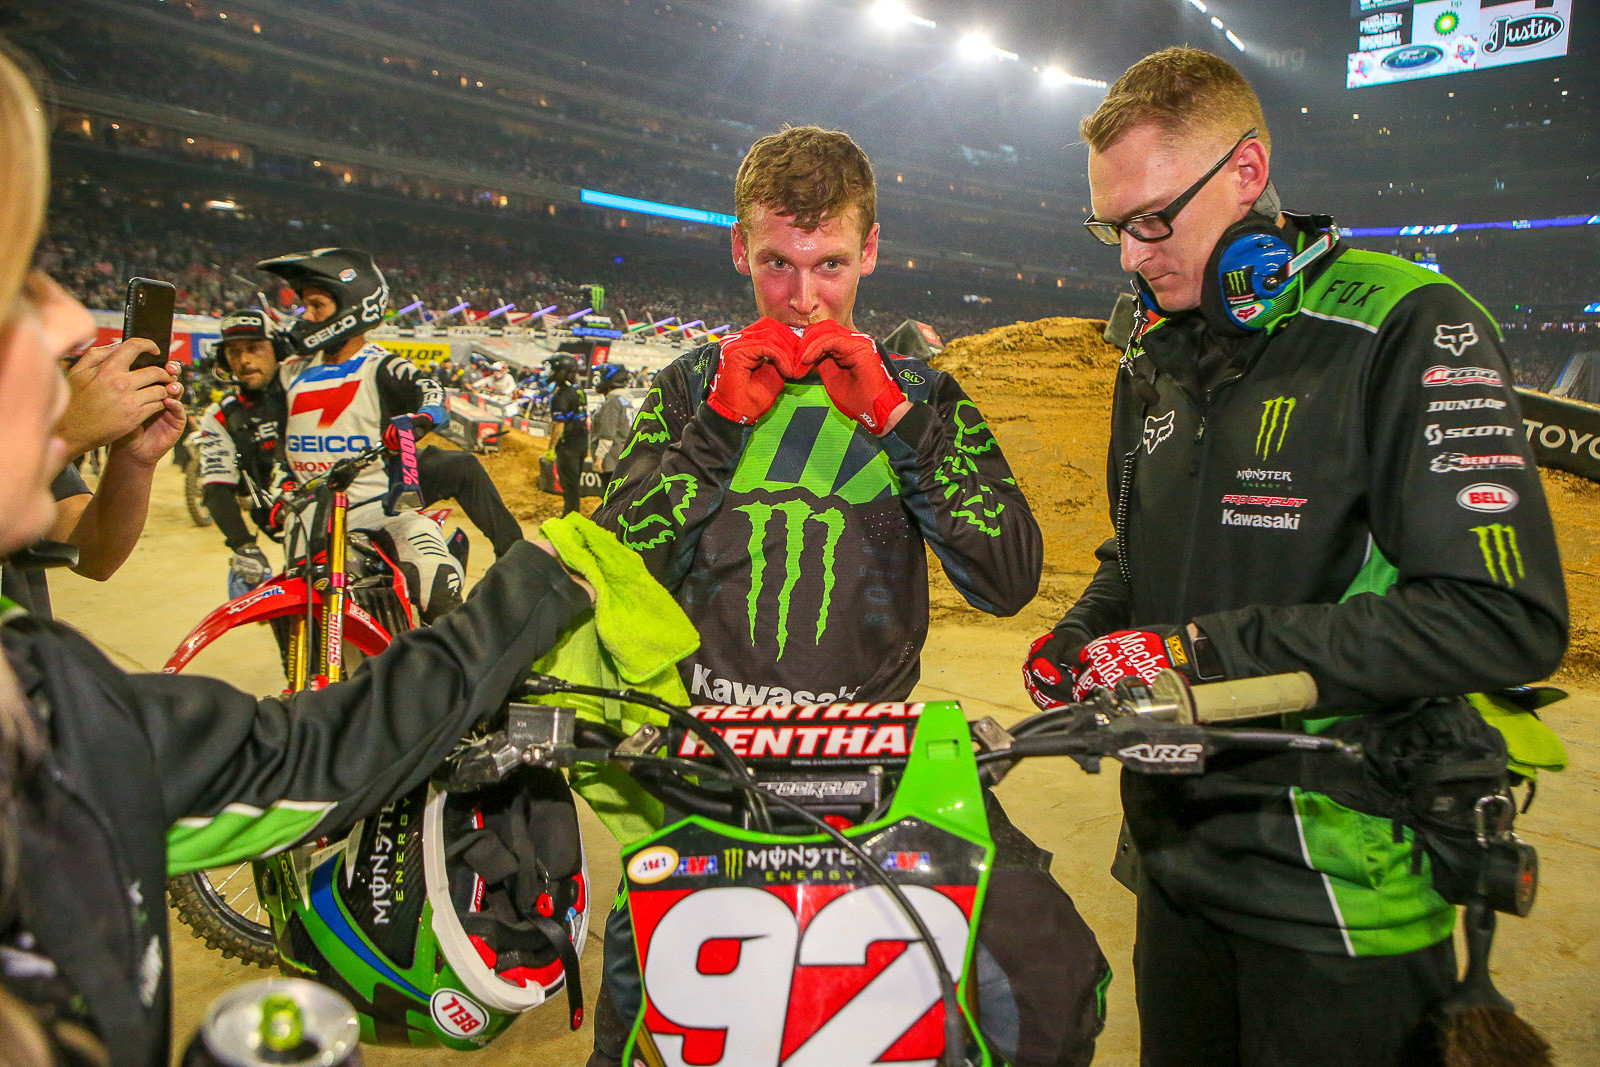 Adam Cianciarulo took the first moto of the 250 Triple Crown, and downed a gel pack before heading for the podium. Unfortunately an off-track excursion in the second main hurt his overall for the night.